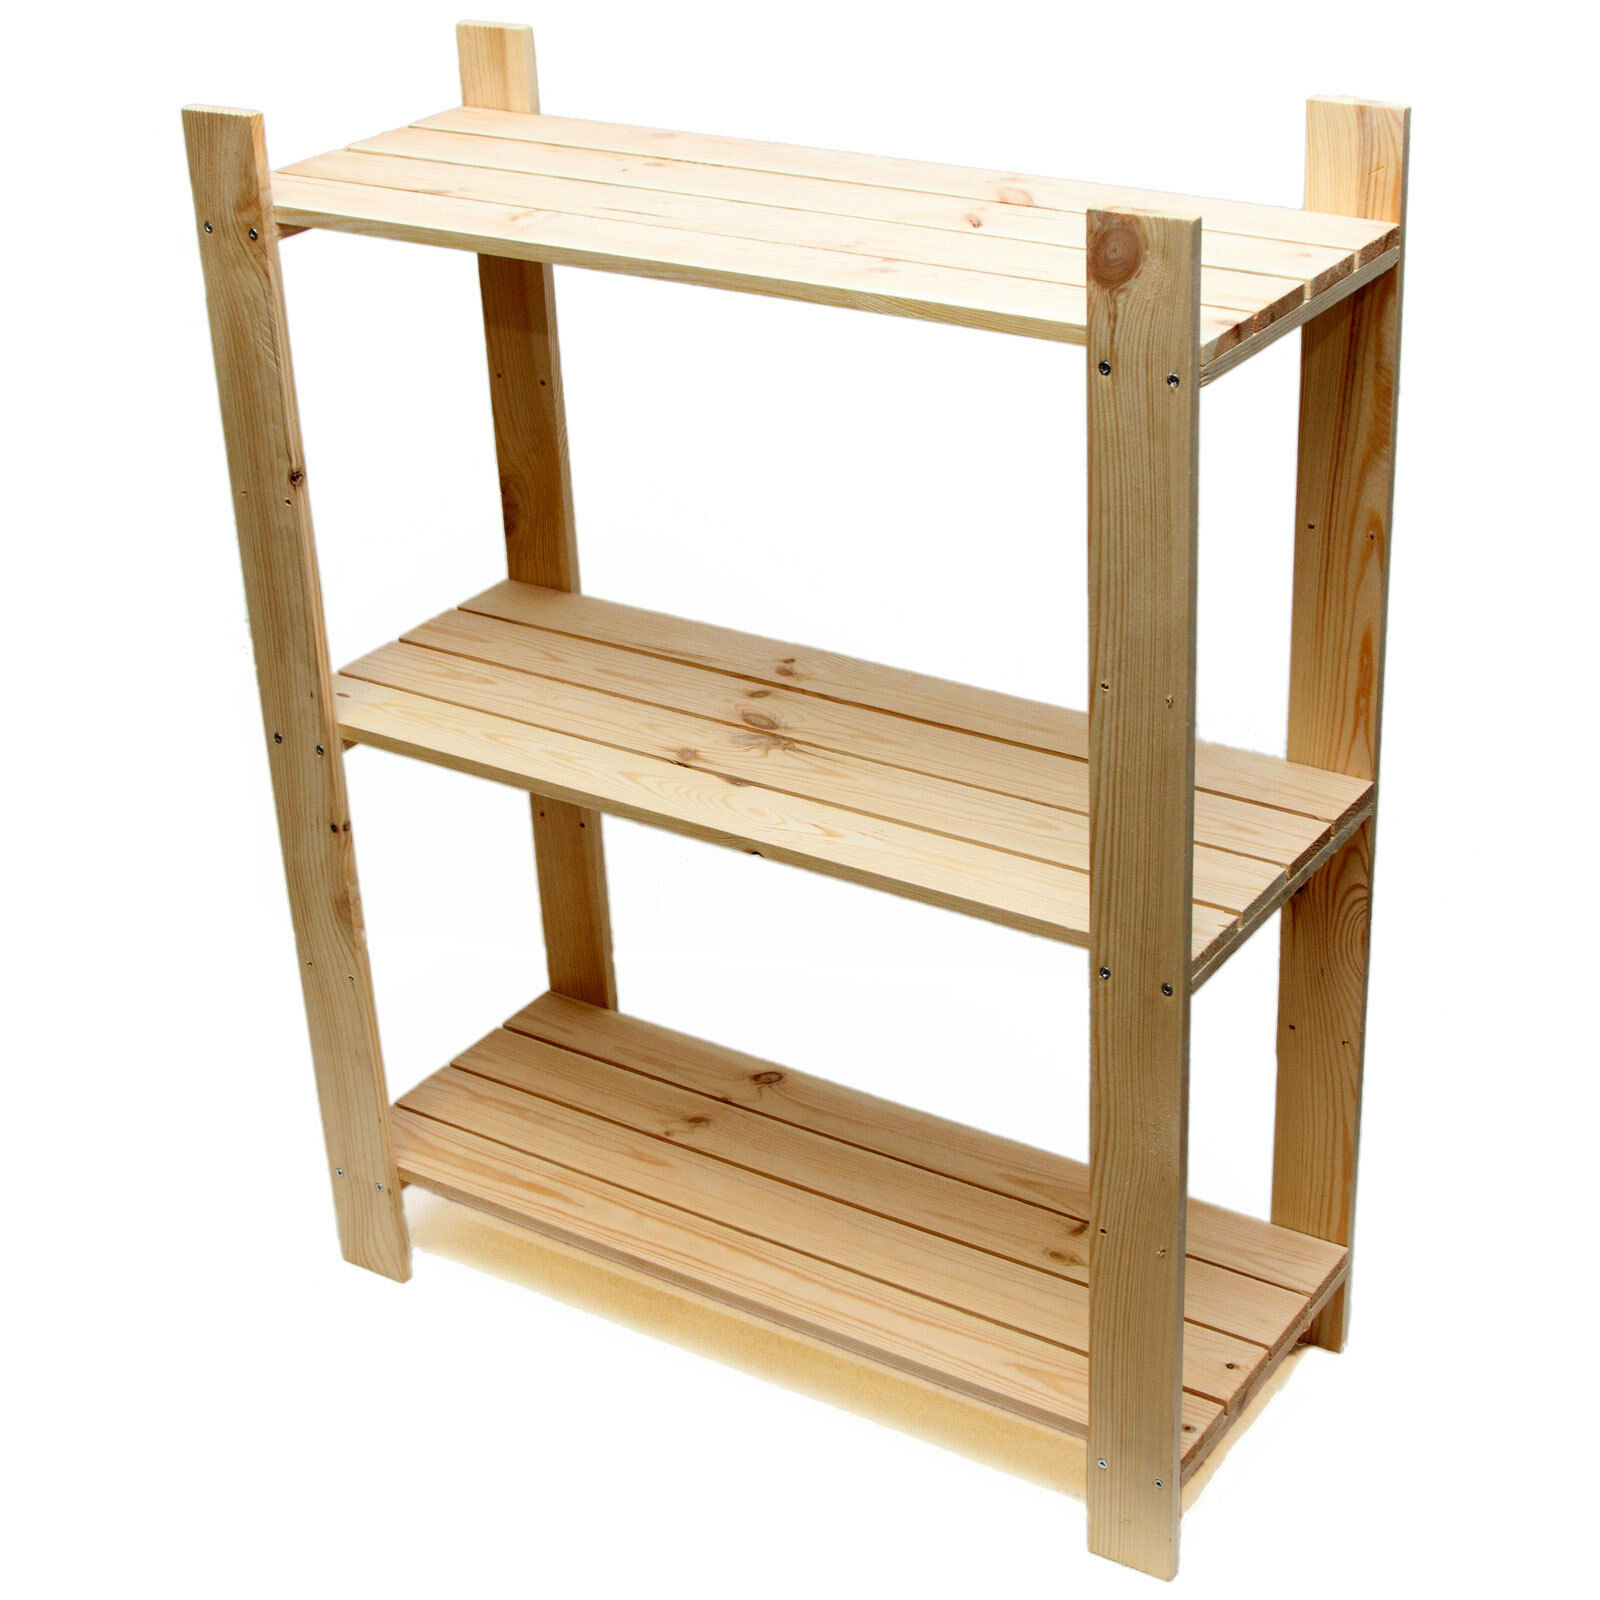 Plans To Build Free Standing Shelf Plans Pdf Plans